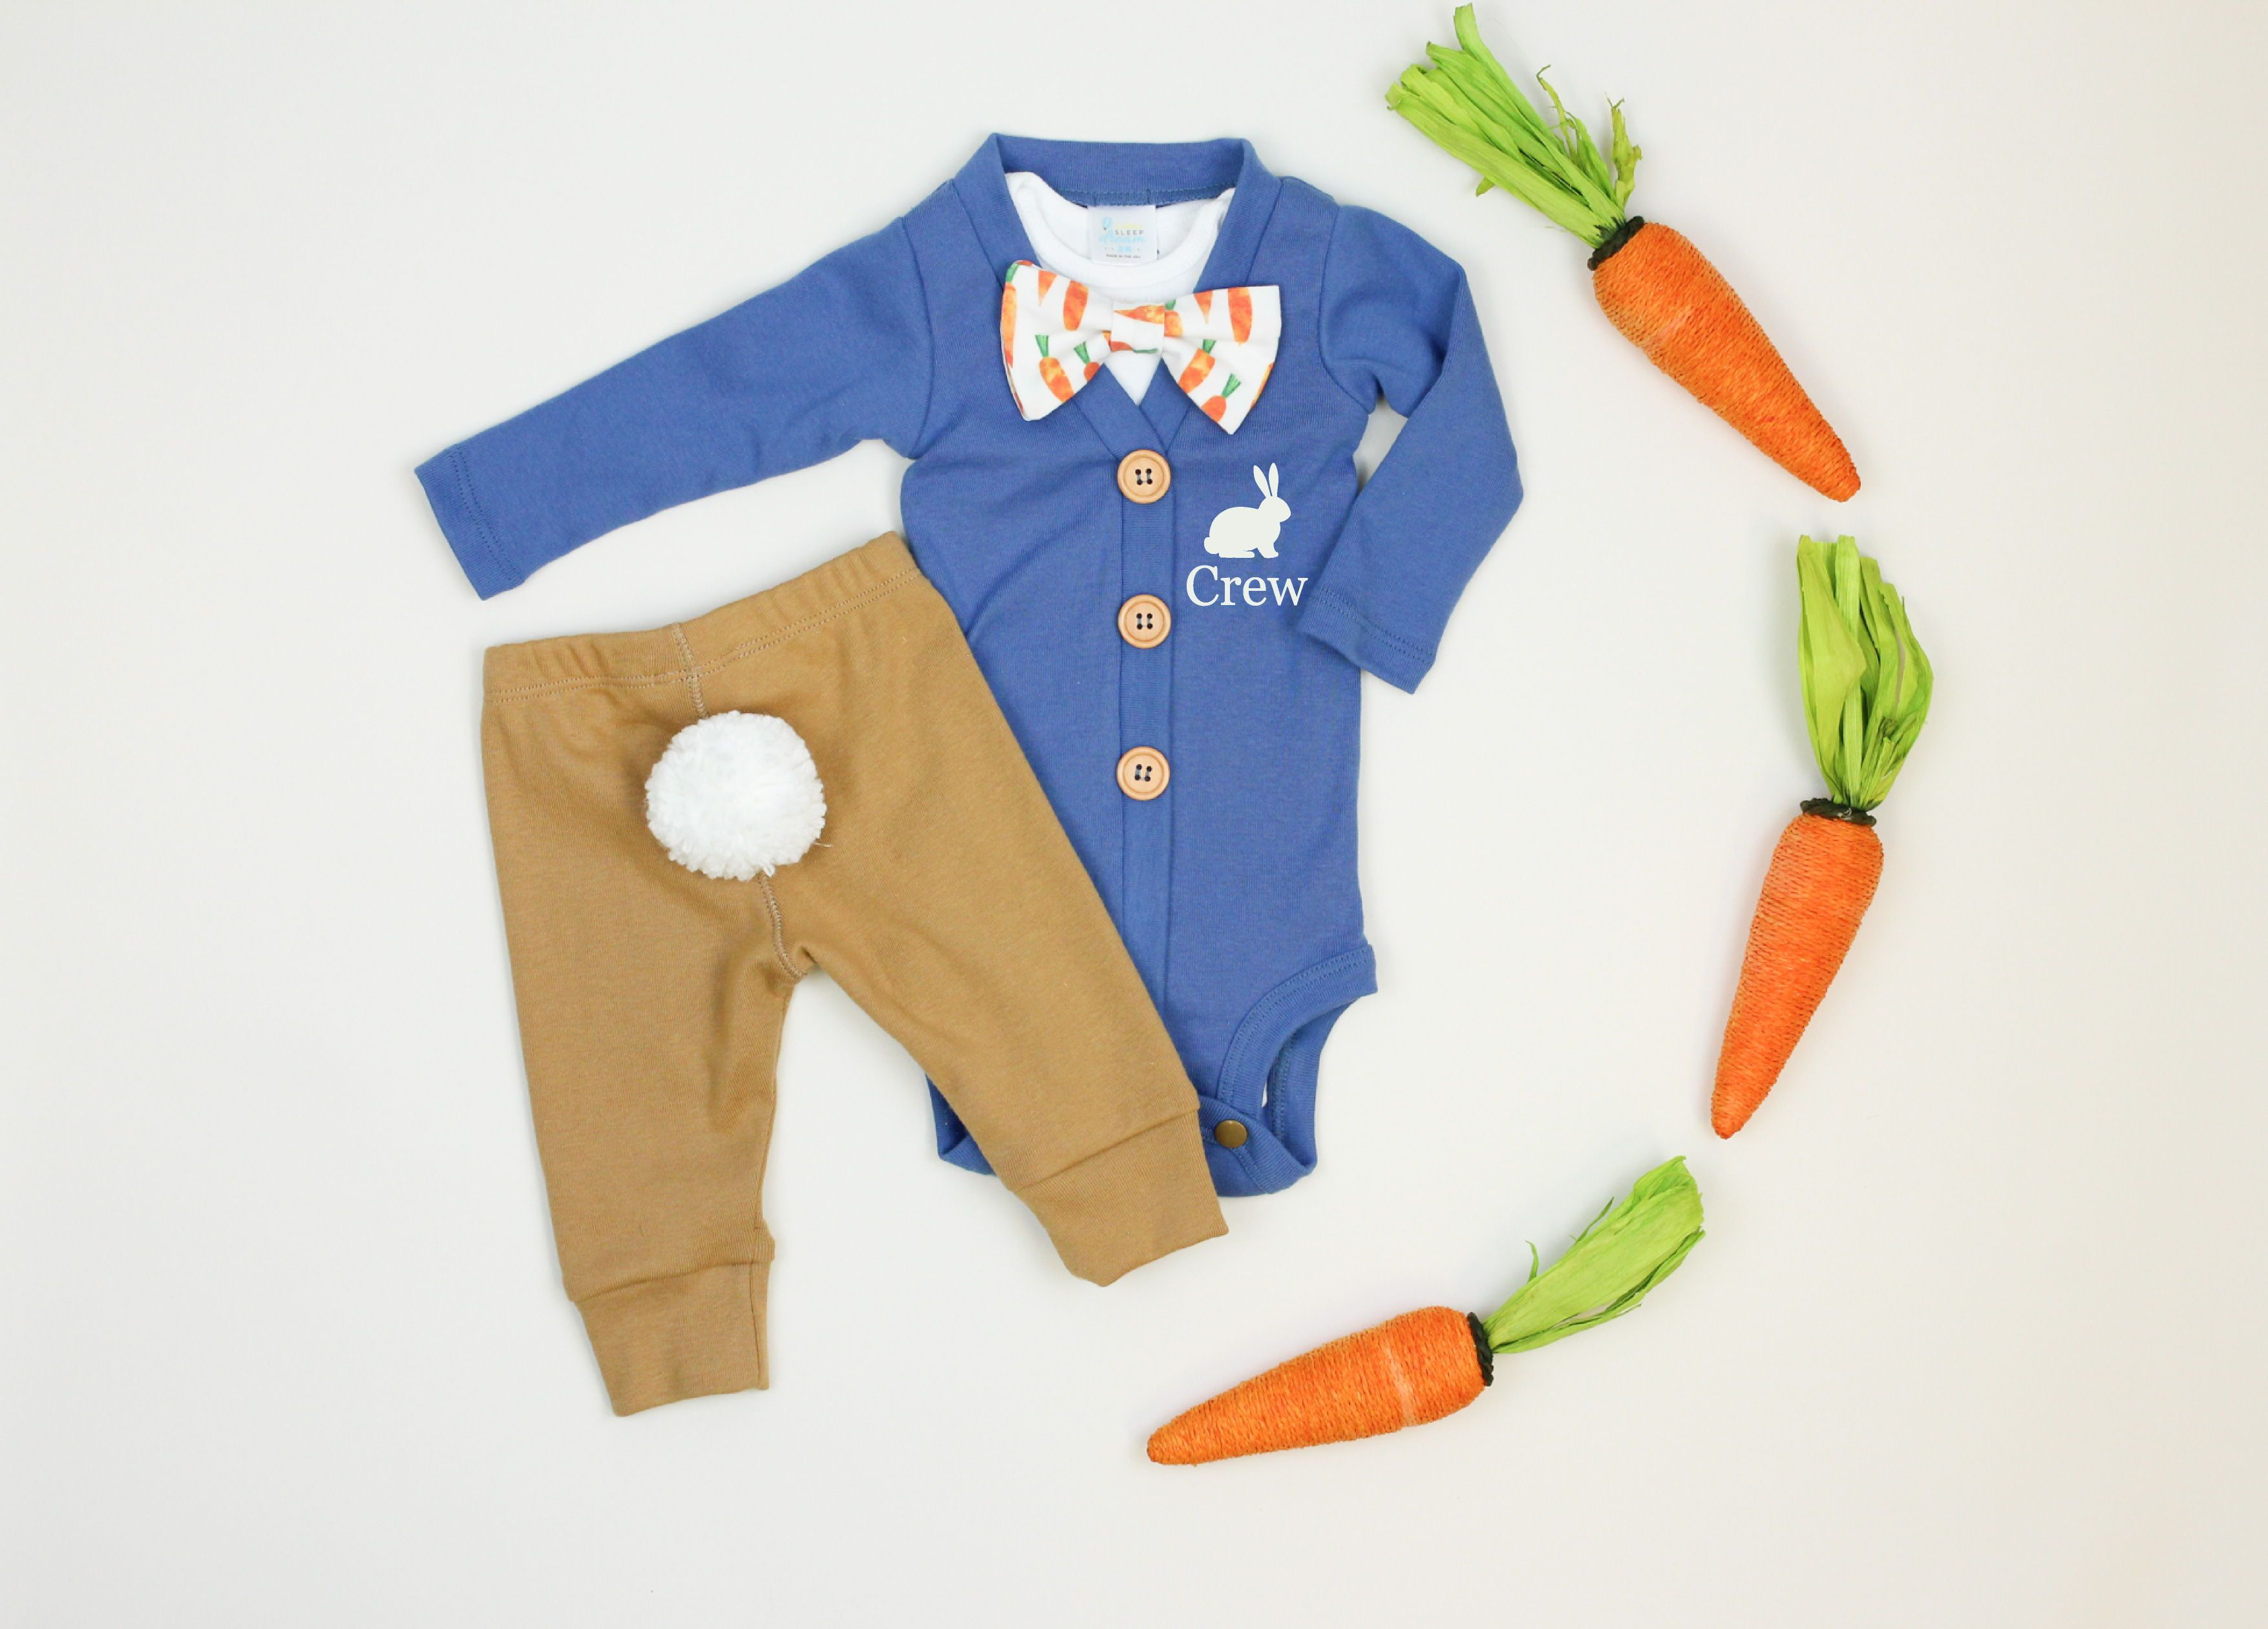 6e140d7f4bea2f Personalized Peter Rabbit cardigan onesie + bunny tail pants, baby boy  easter outfit, bow tie, carrots, blue, handmade